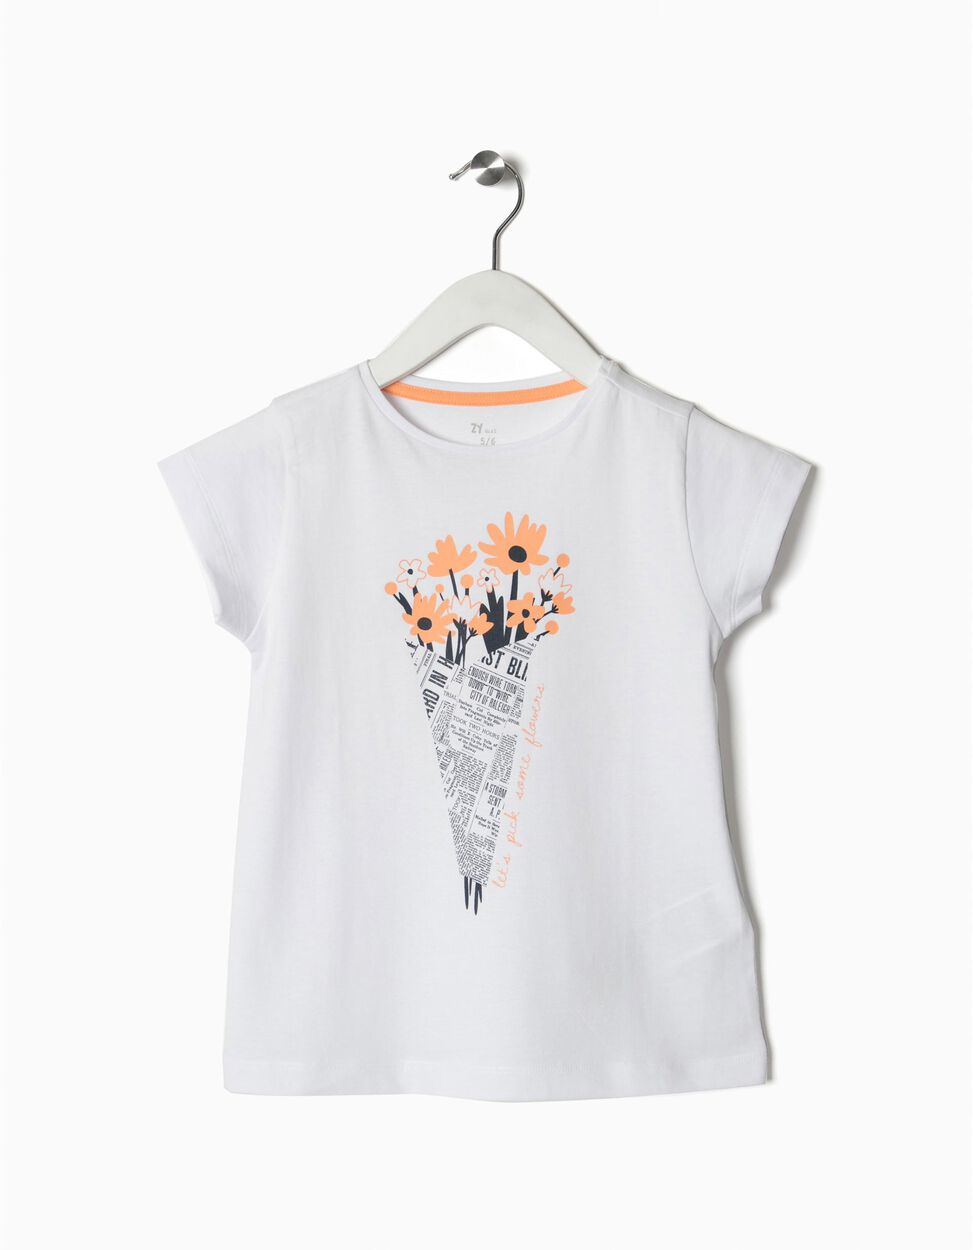 T-shirt pick some flowers